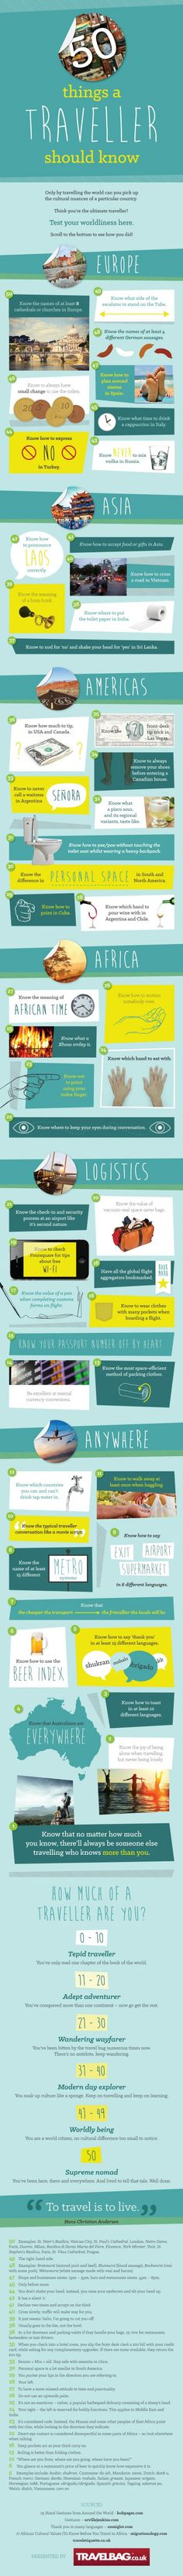 50 Things a Traveler Should know Infographic - Tales of a Ranting Ginger